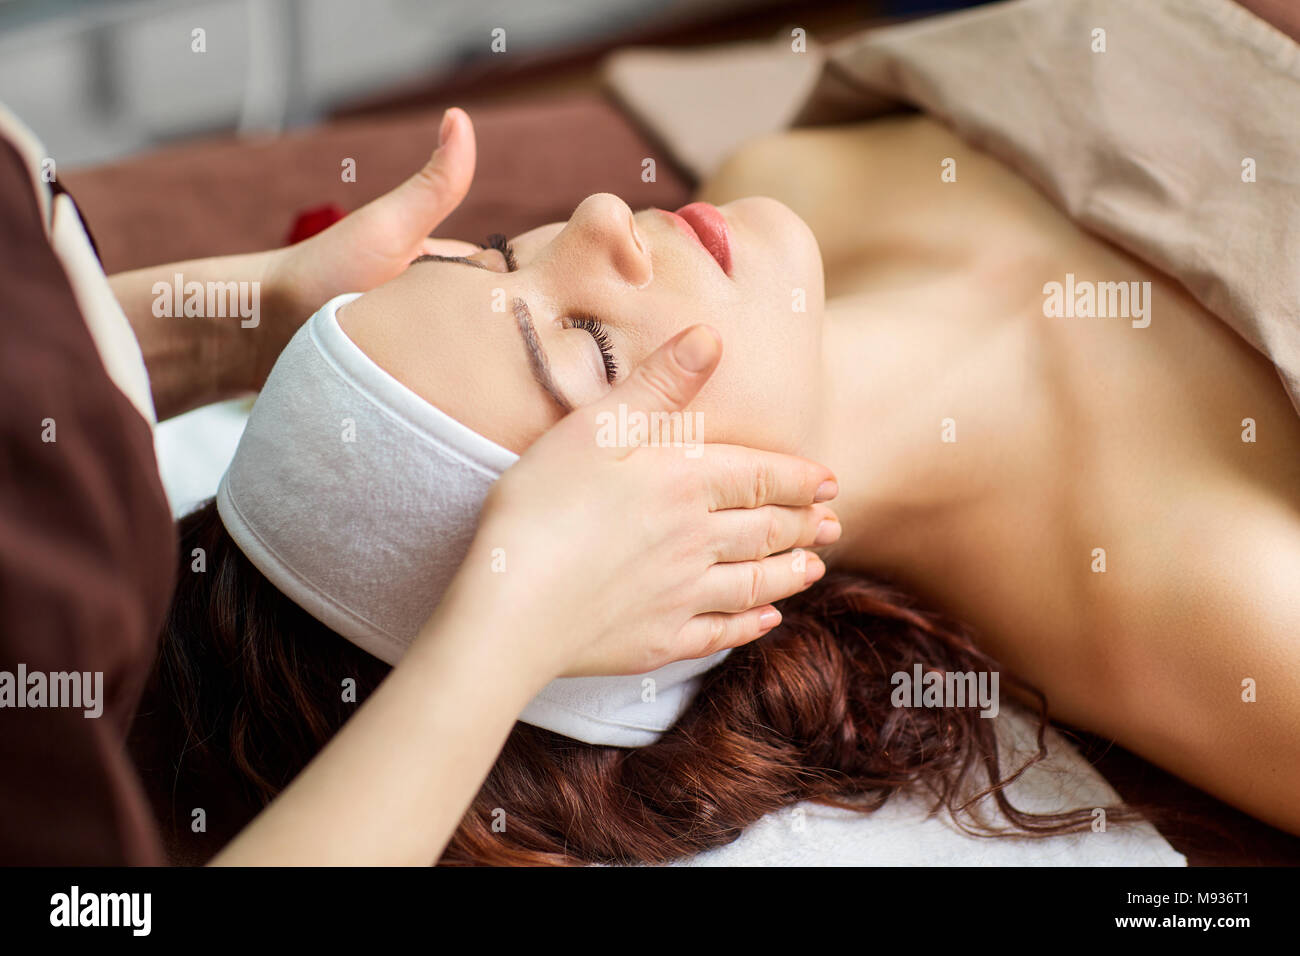 Beautiful woman at a facial massage at a spa salon - Stock Image